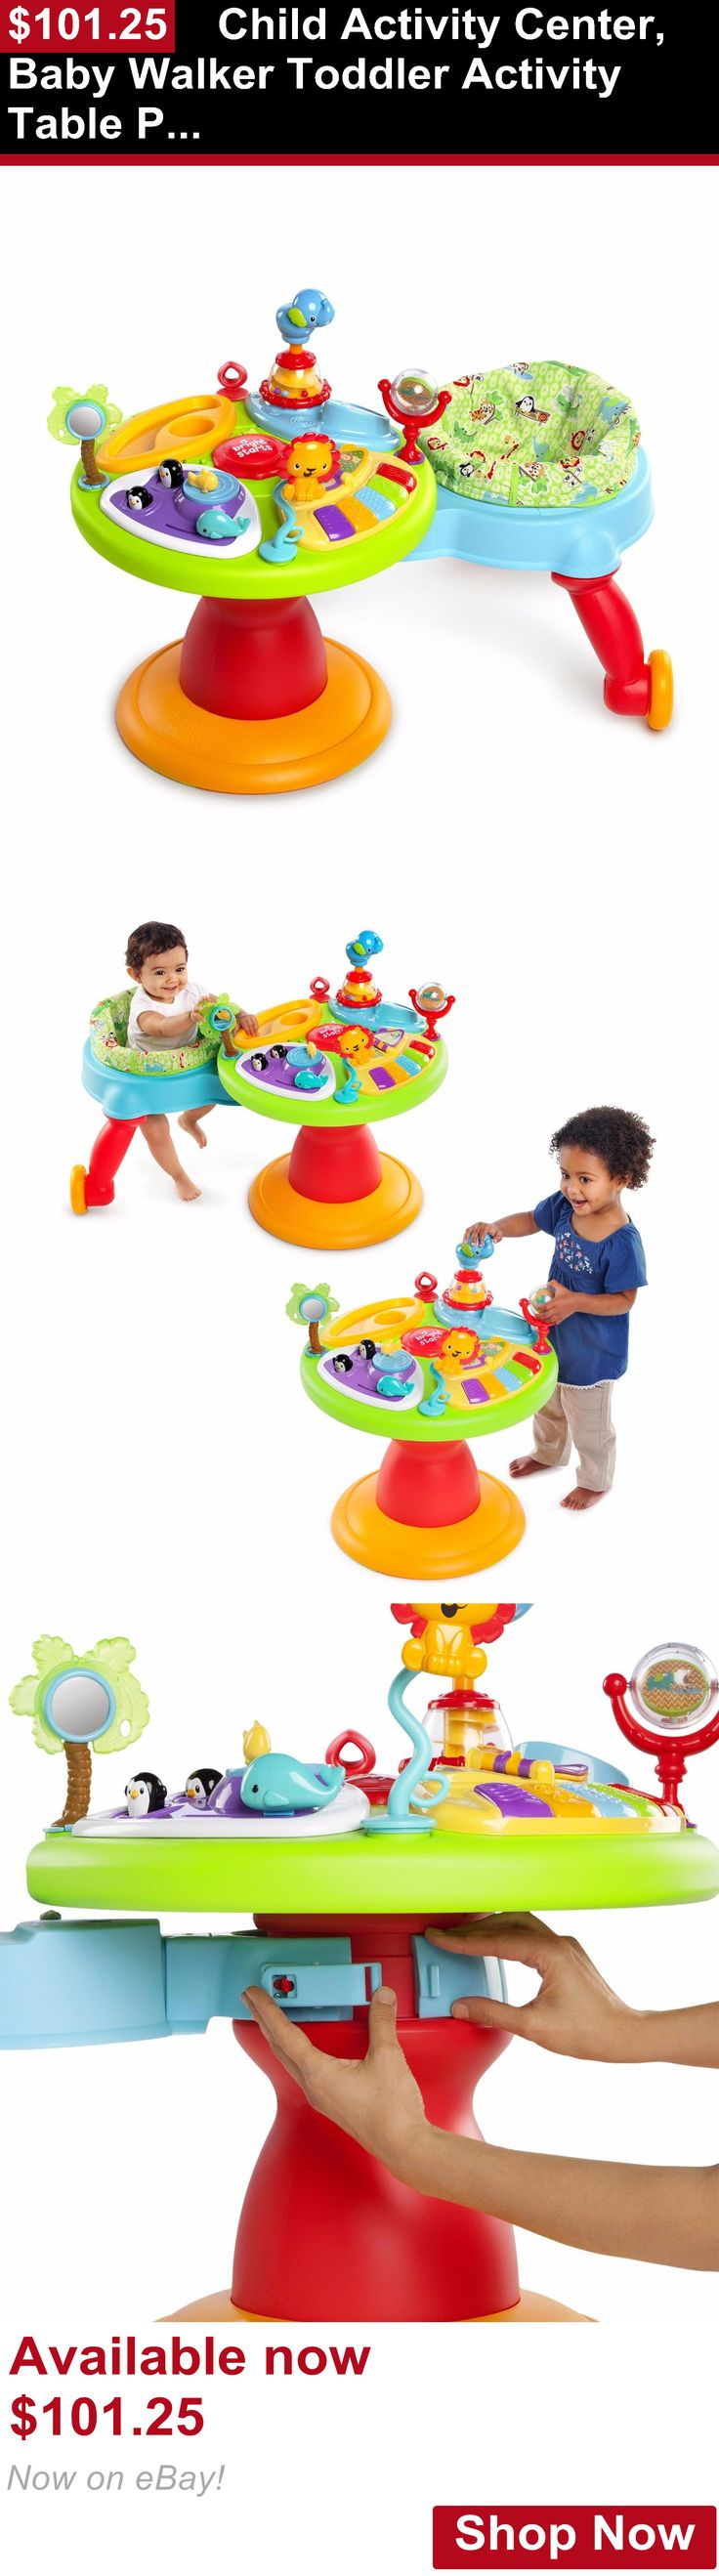 Baby activity centers: Child Activity Center, Baby Walker Toddler Activity Table Piano Station, Sounds BUY IT NOW ONLY: $101.25